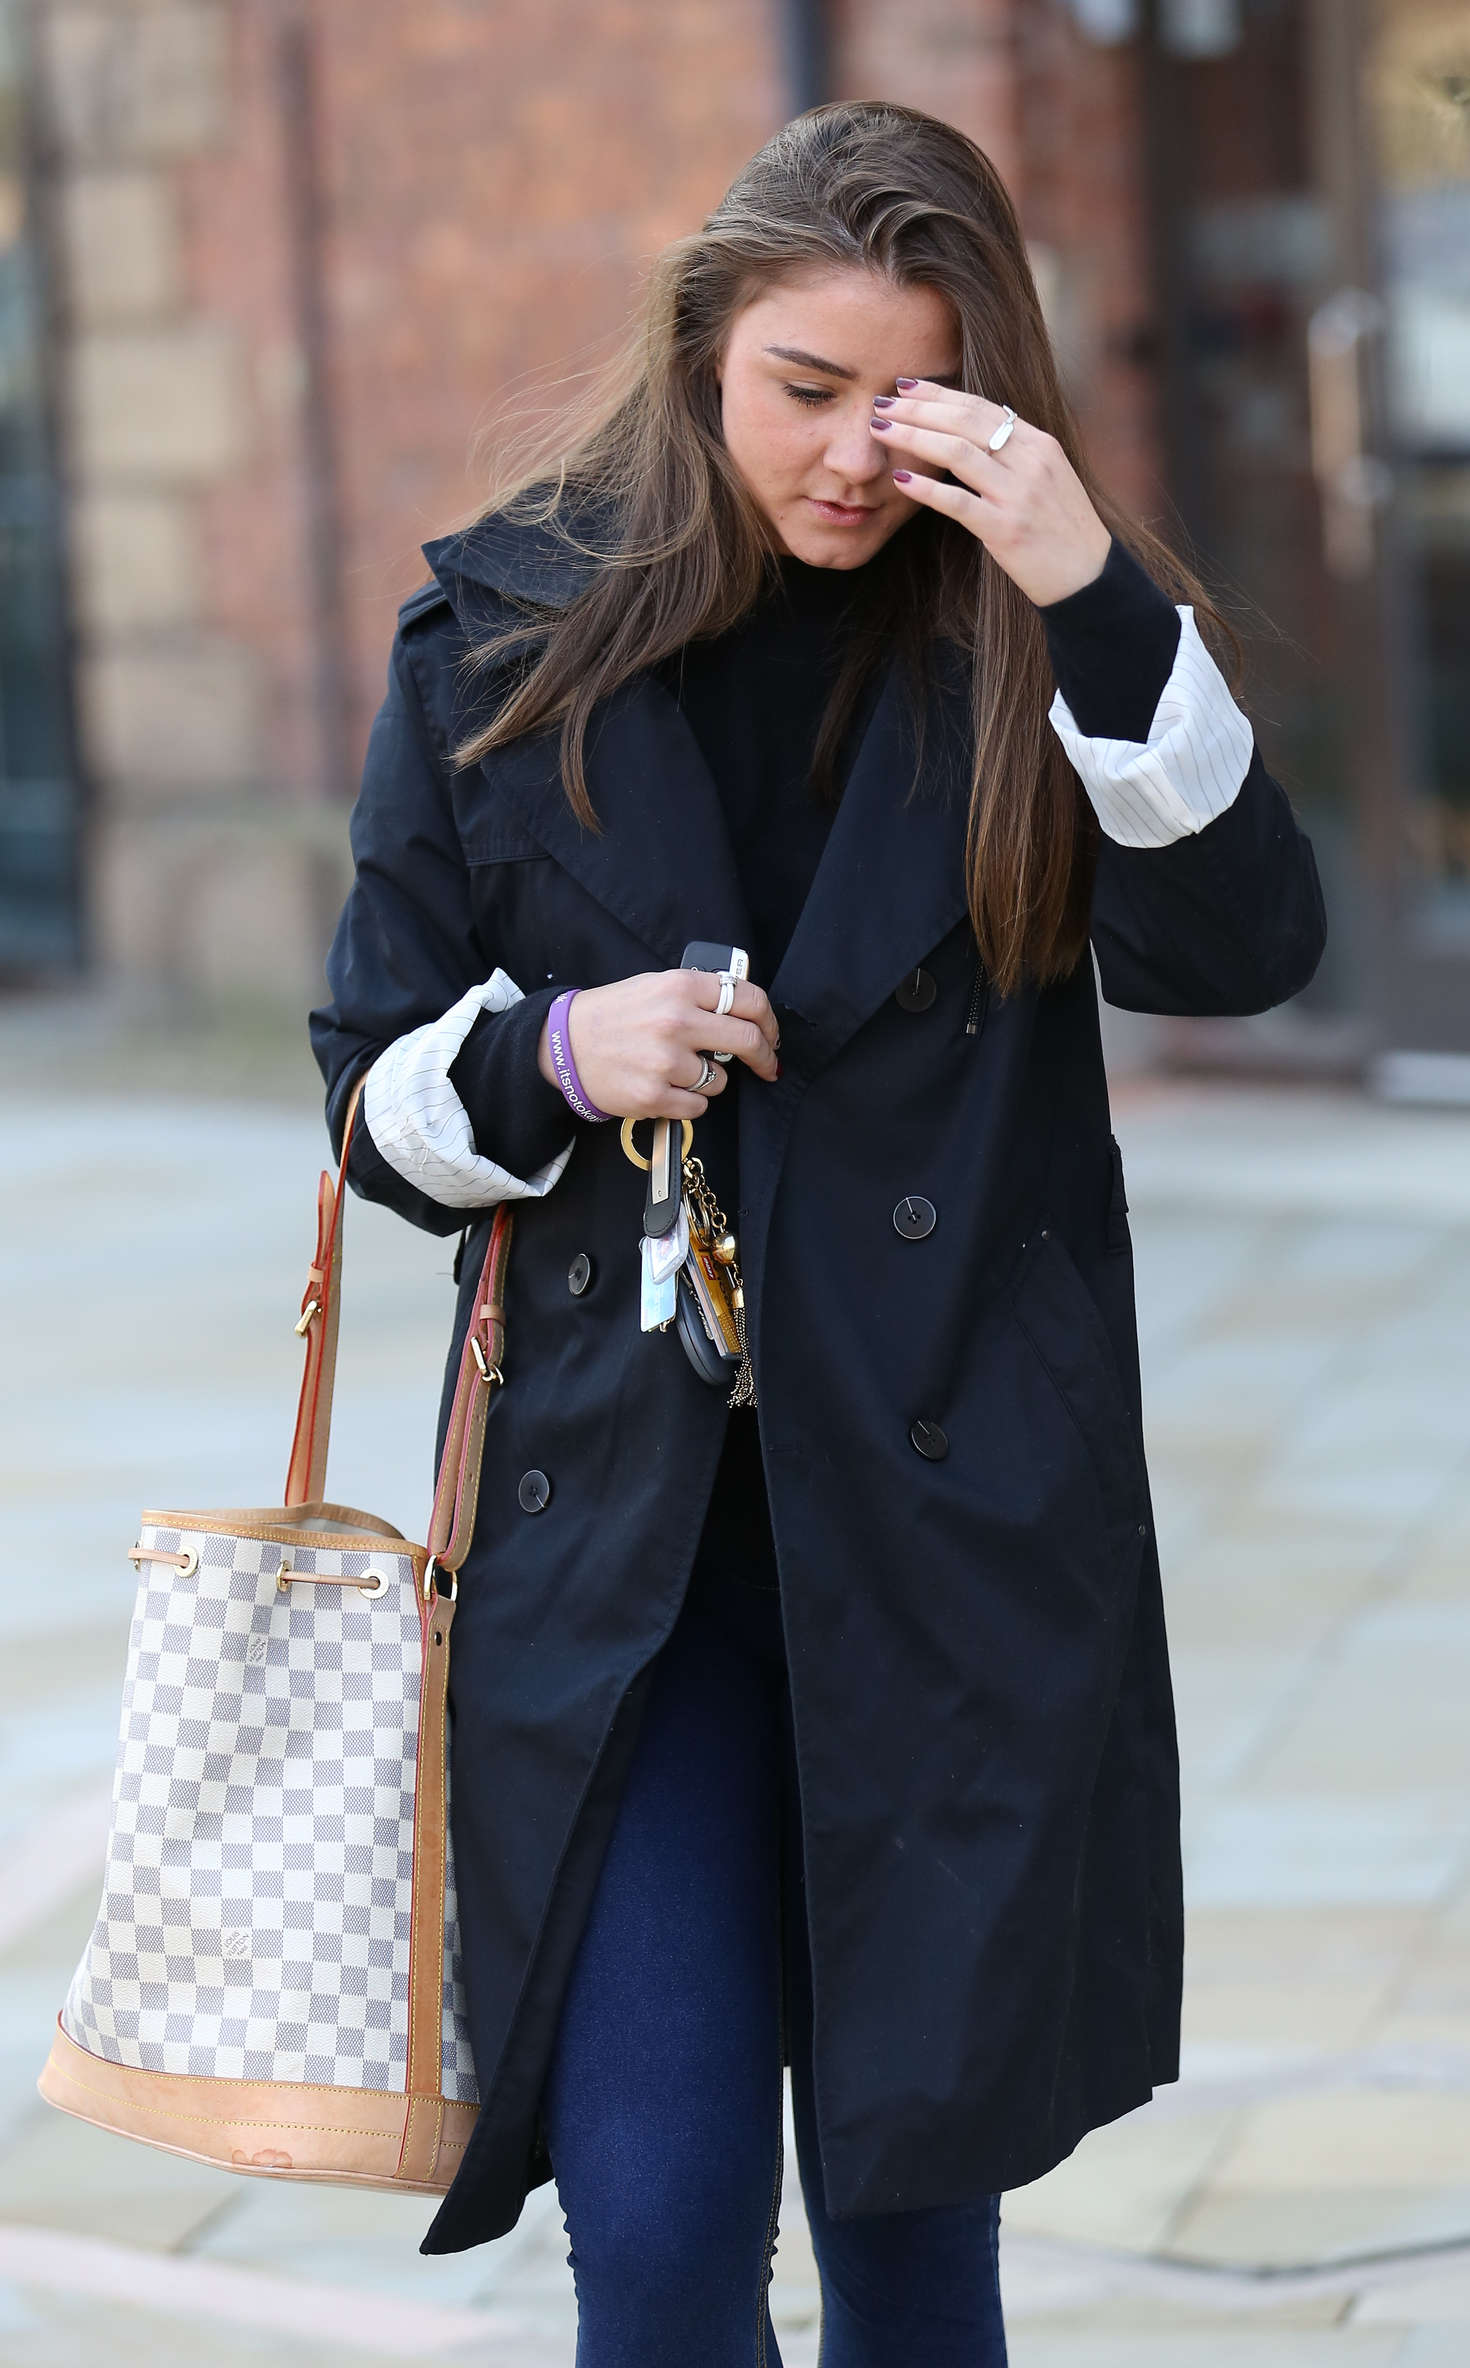 Brooke Vincent Leaving Key Radio station in Manchester